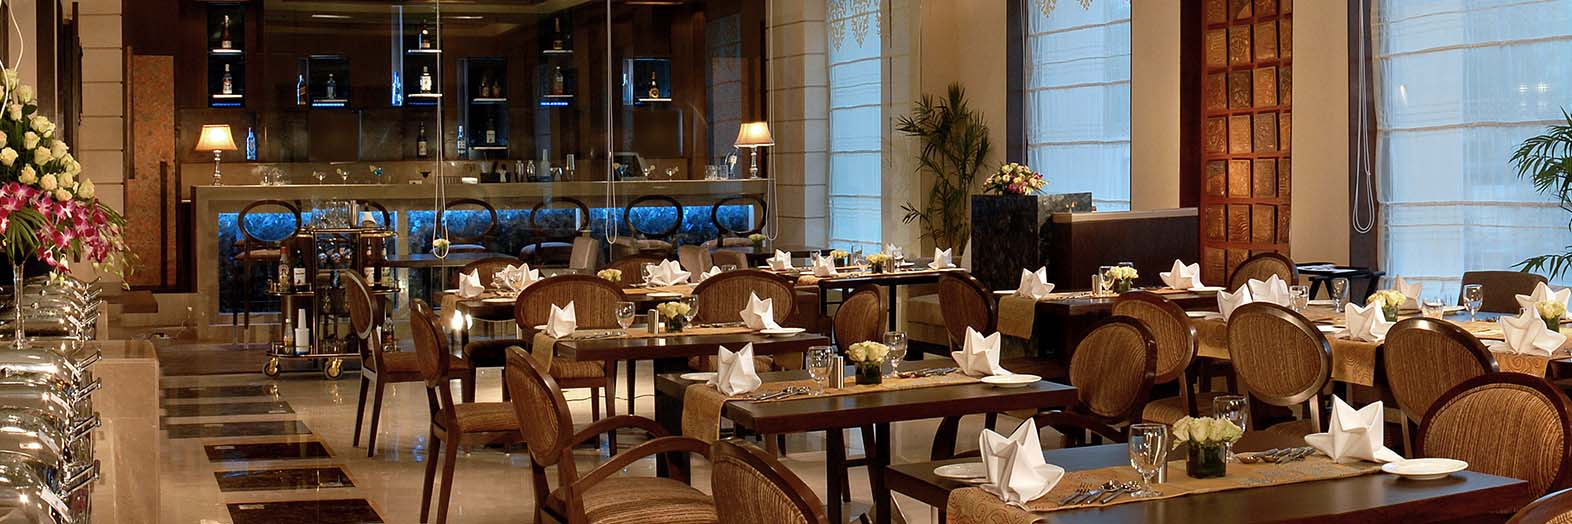 Fortune Inn Grazia – Hotels in  Noida  Dining